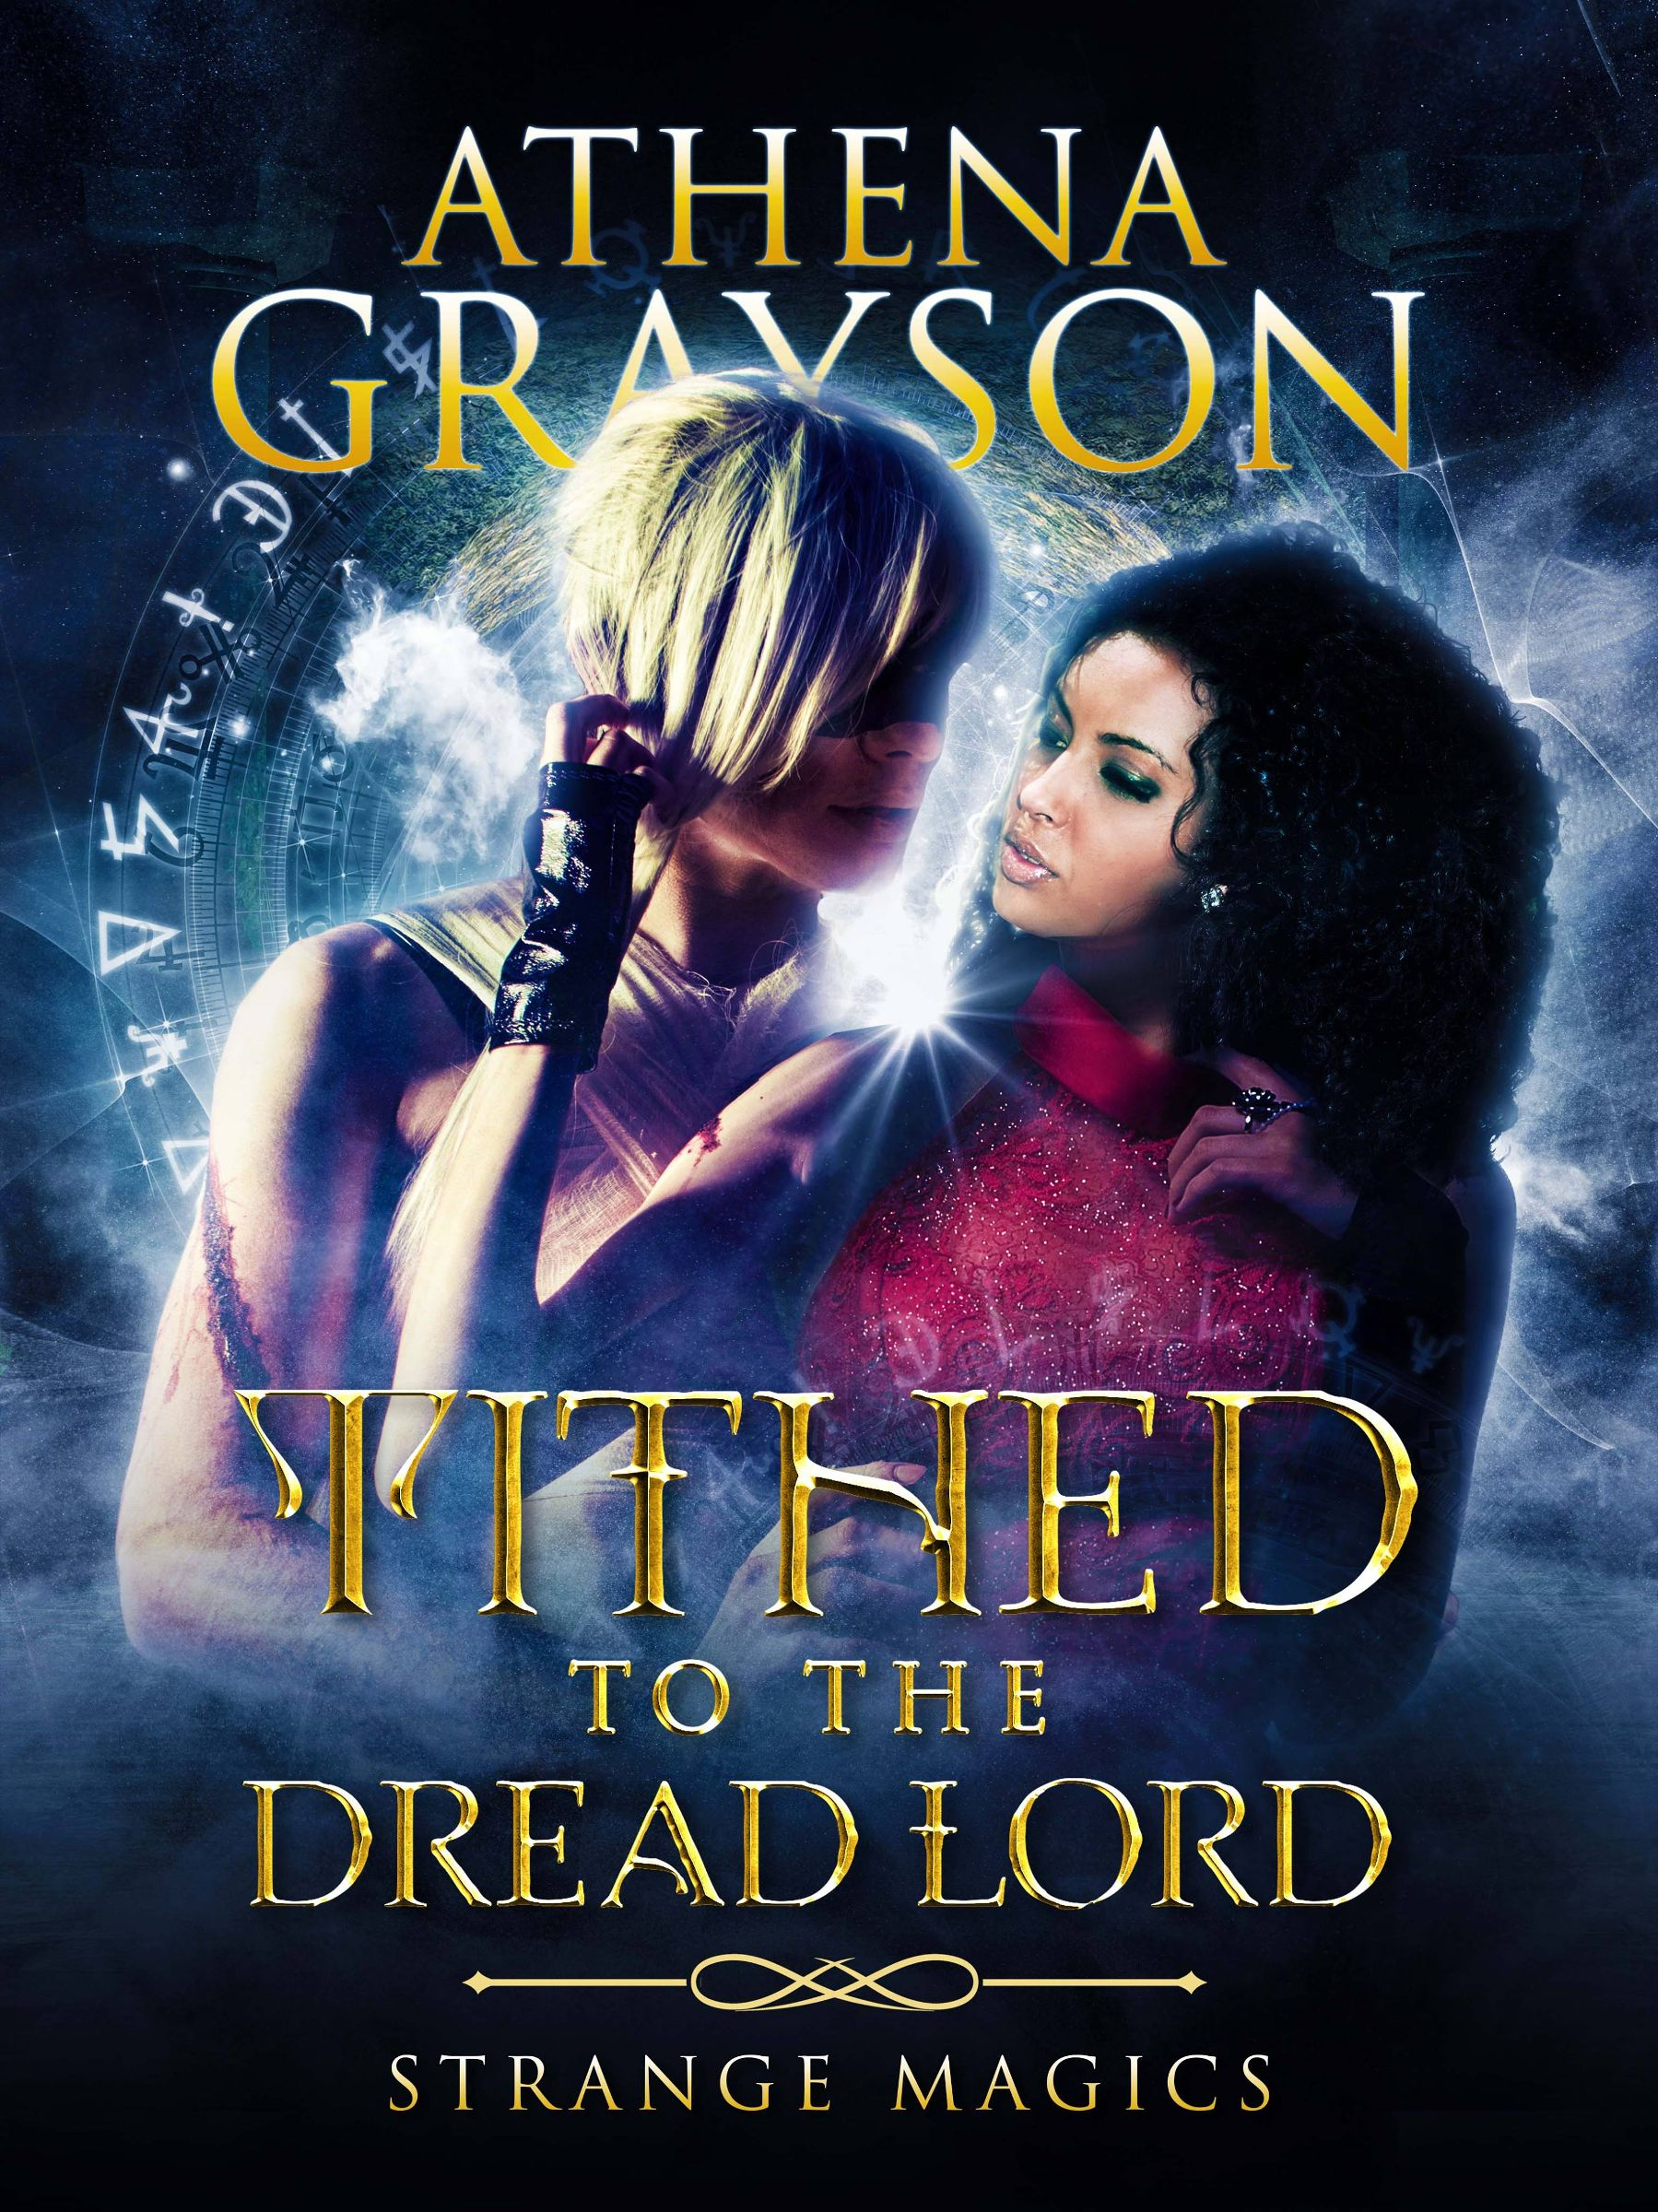 Read an excerpt from Strange Magics: Tithed to the Dread Lord